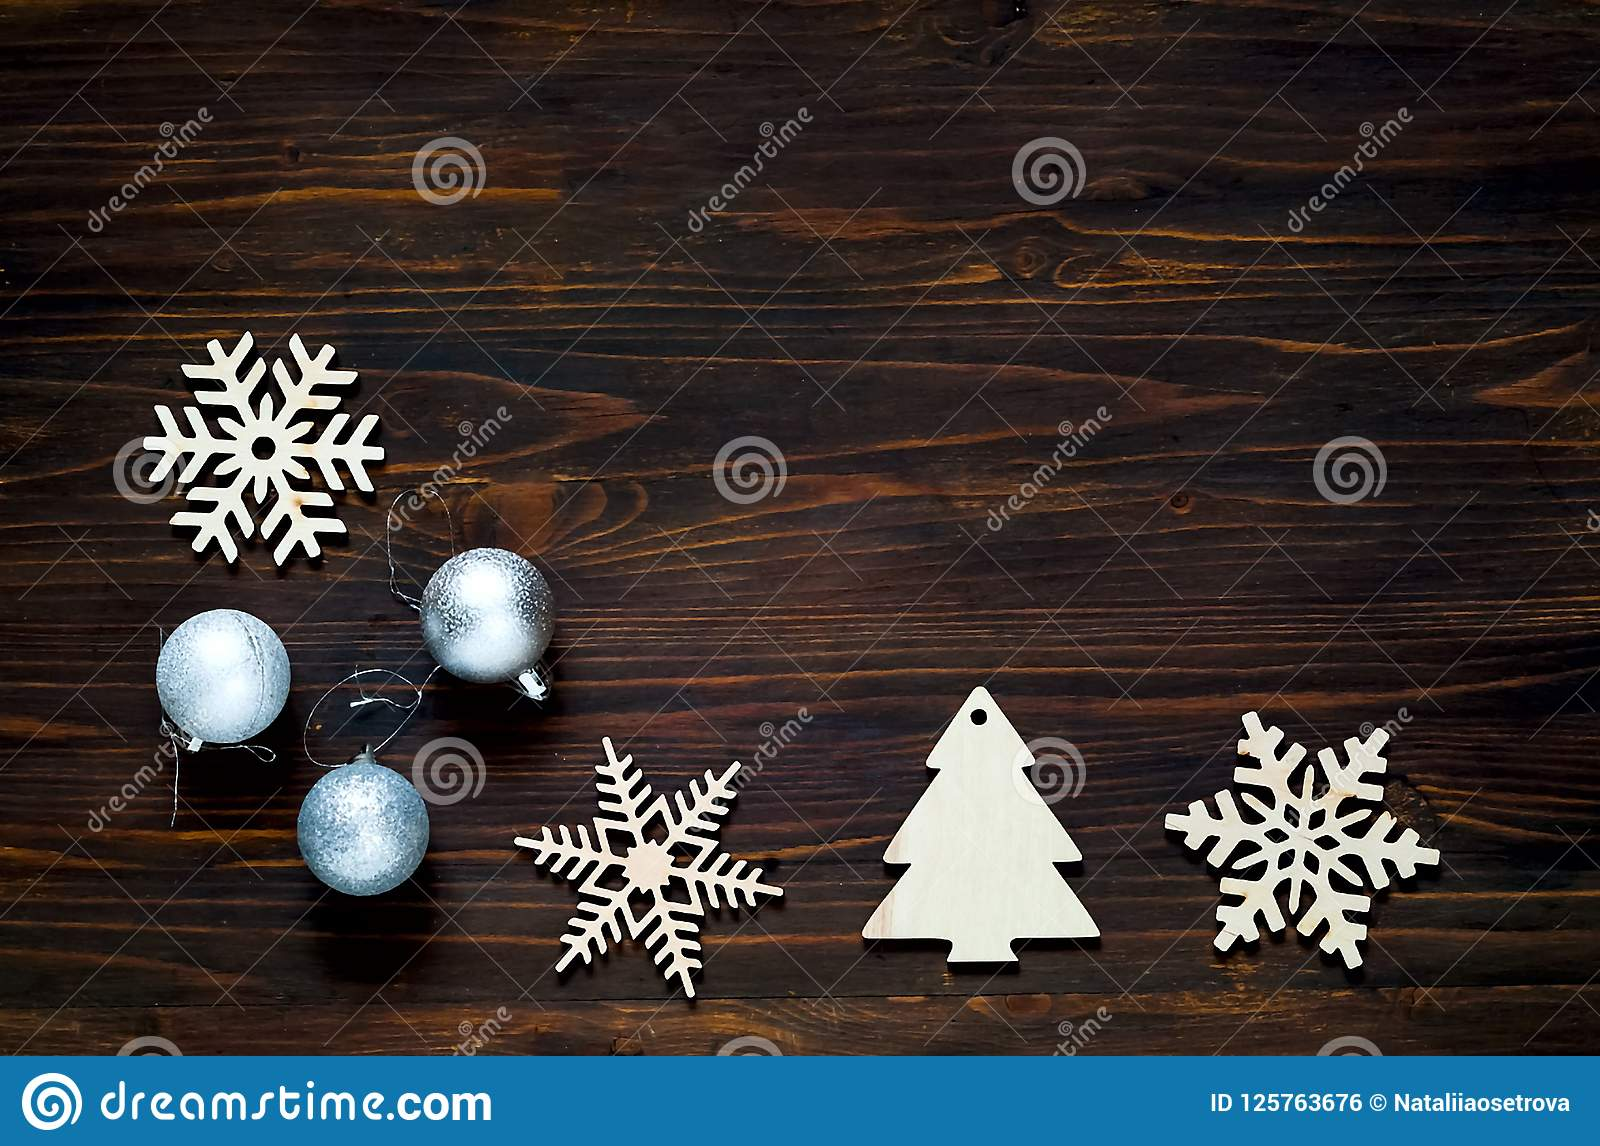 Christmas and New Year`s decor. Decorative wooden snowflakes and silver balls on wooden background, concept of New Year`s holiday